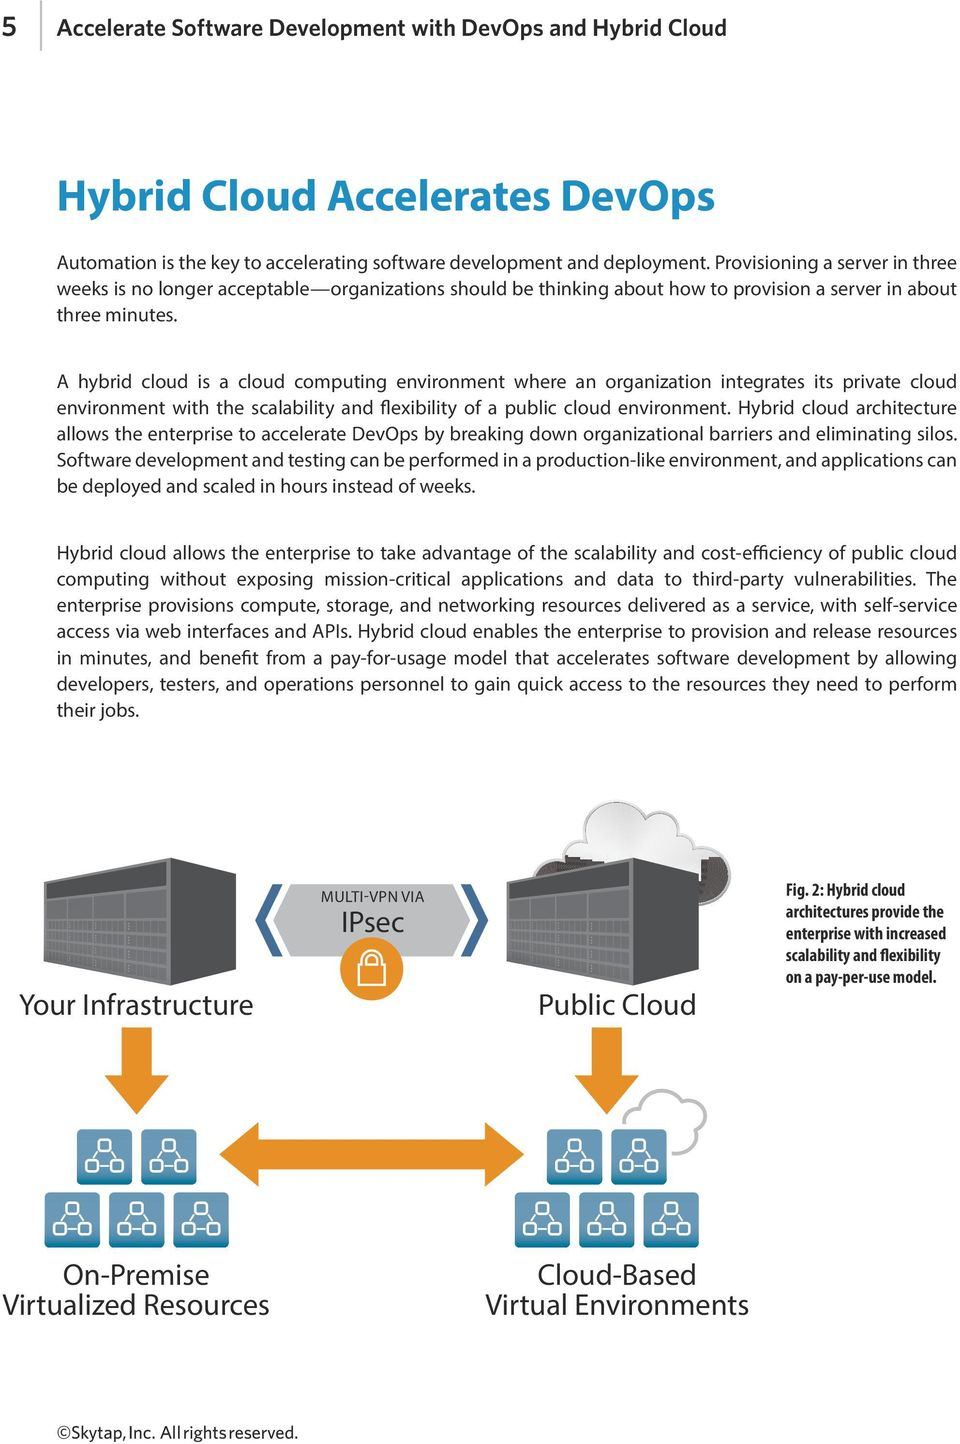 A hybrid cloud is a cloud computing environment where an organization integrates its private cloud environment with the scalability and flexibility of a public cloud environment.